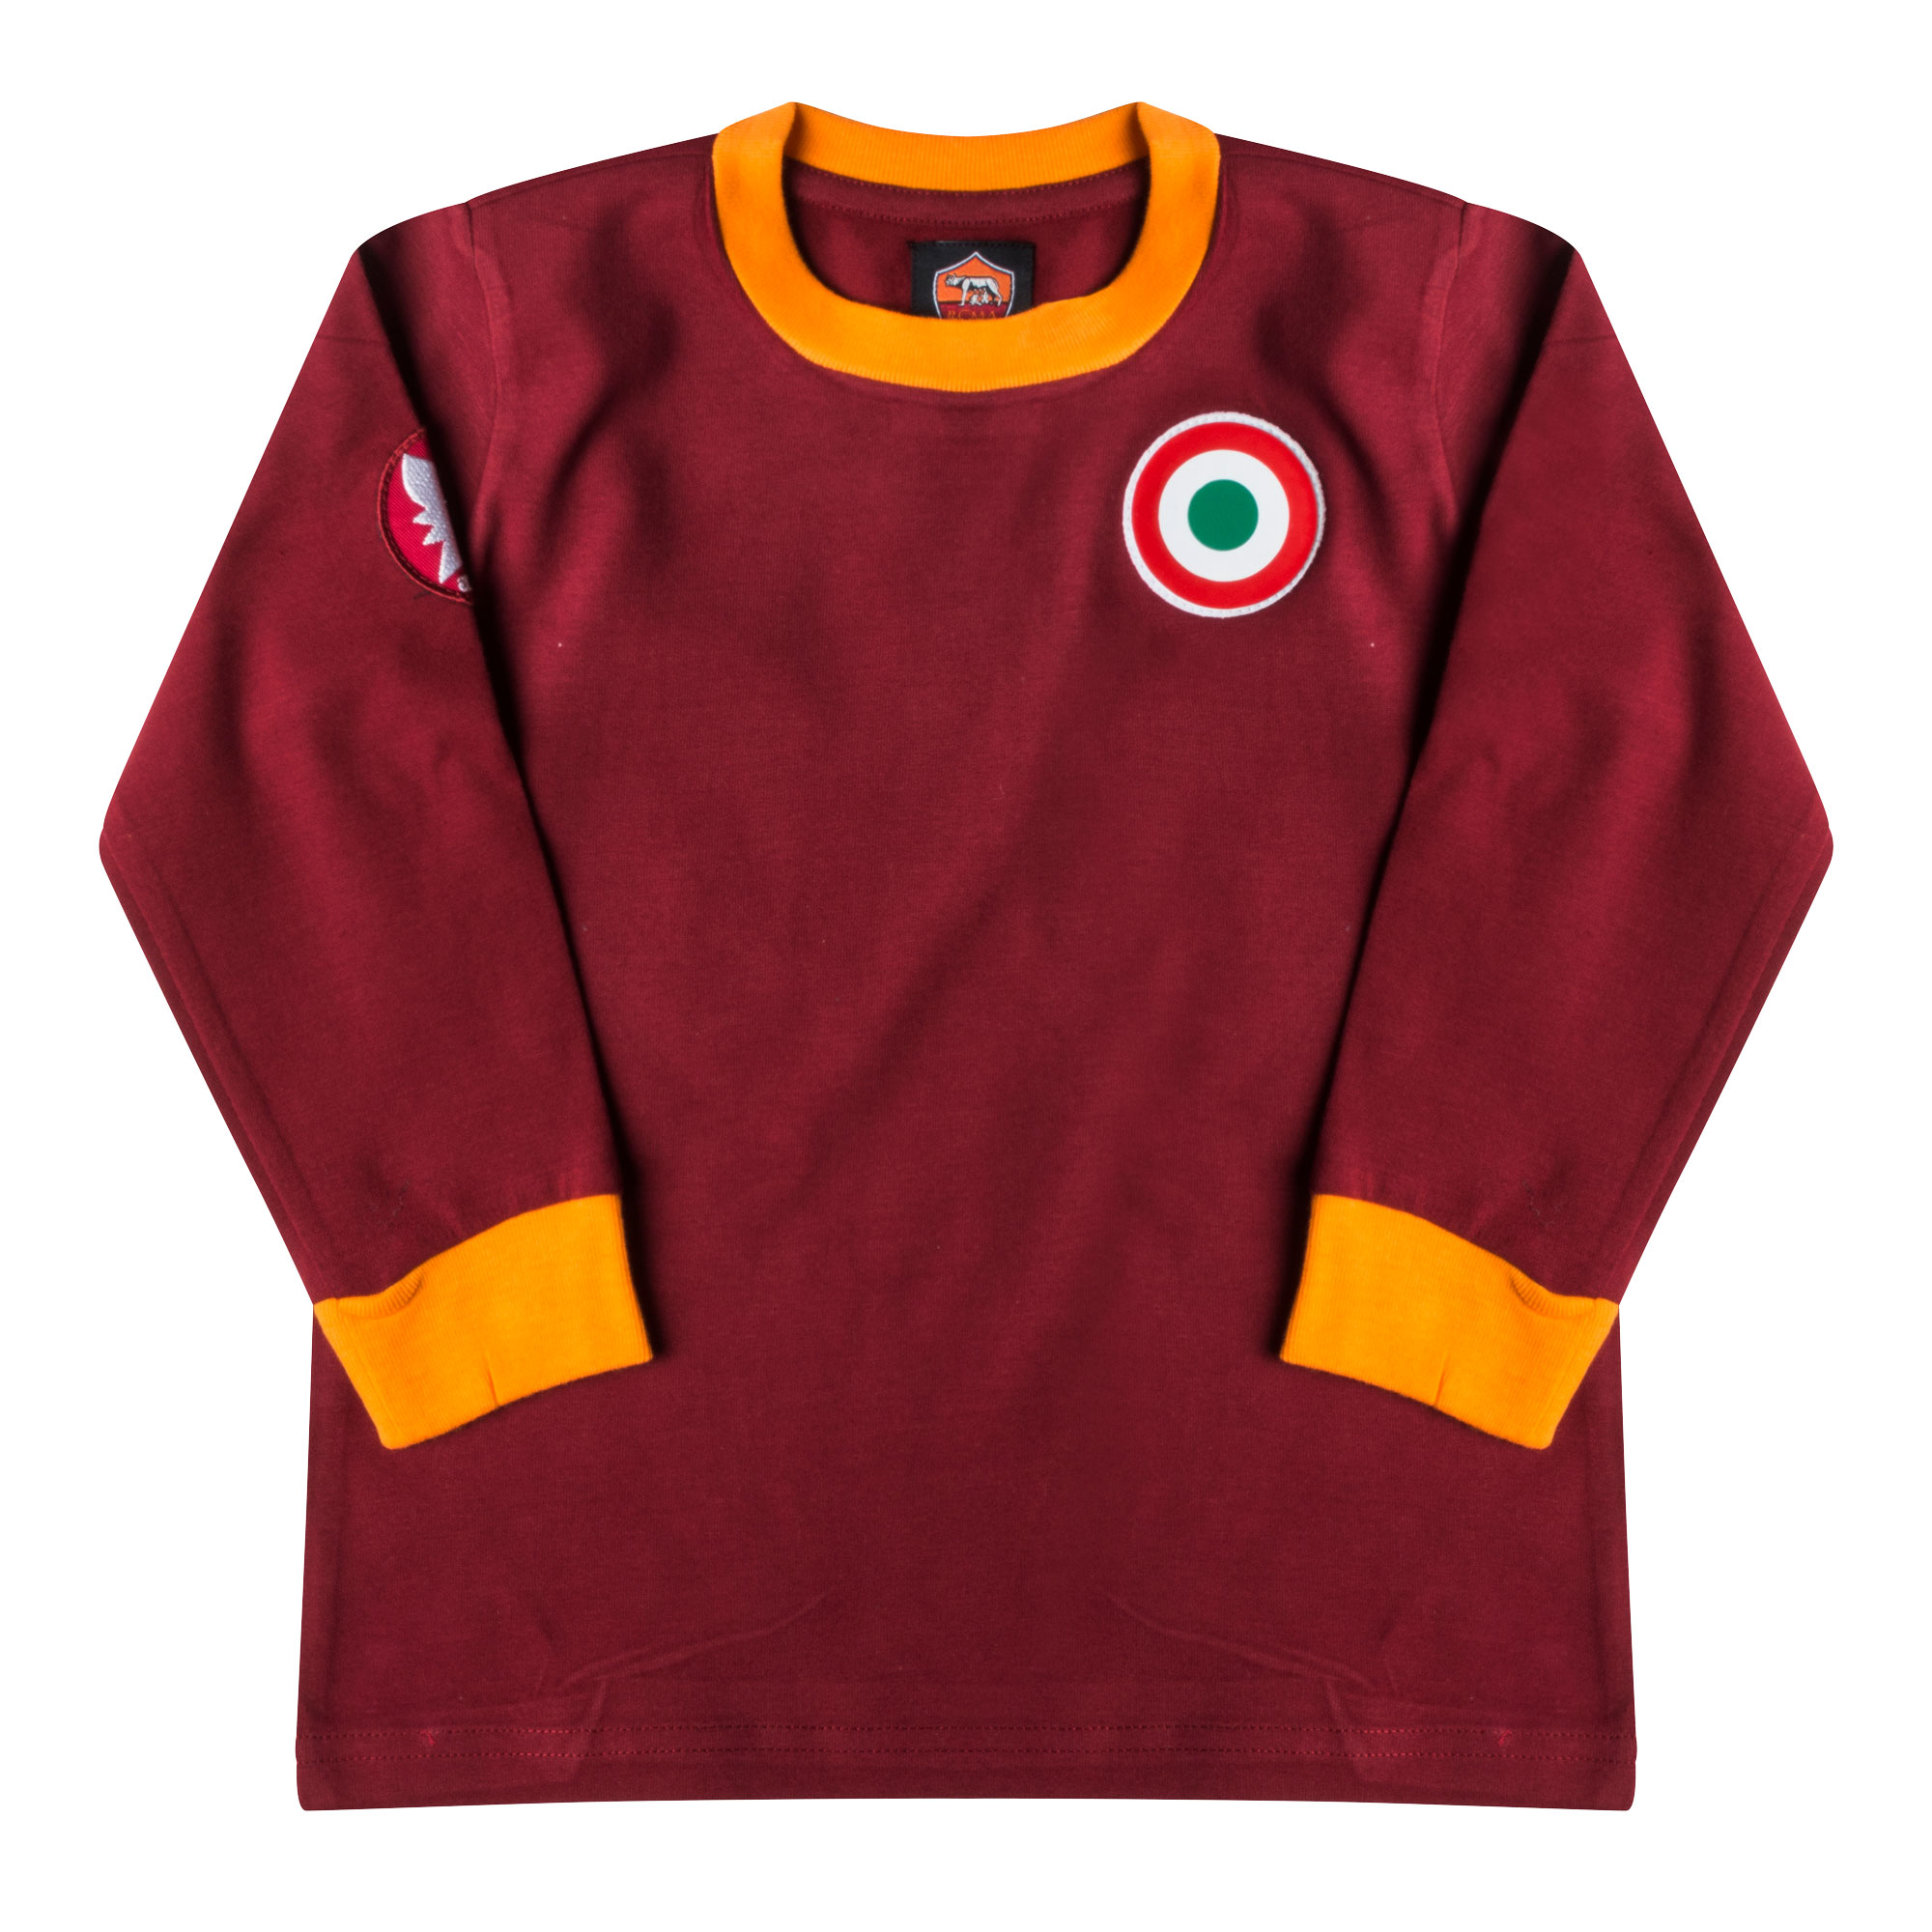 COPA AS Roma 'My First Football Shirt' Home Shirt - 80